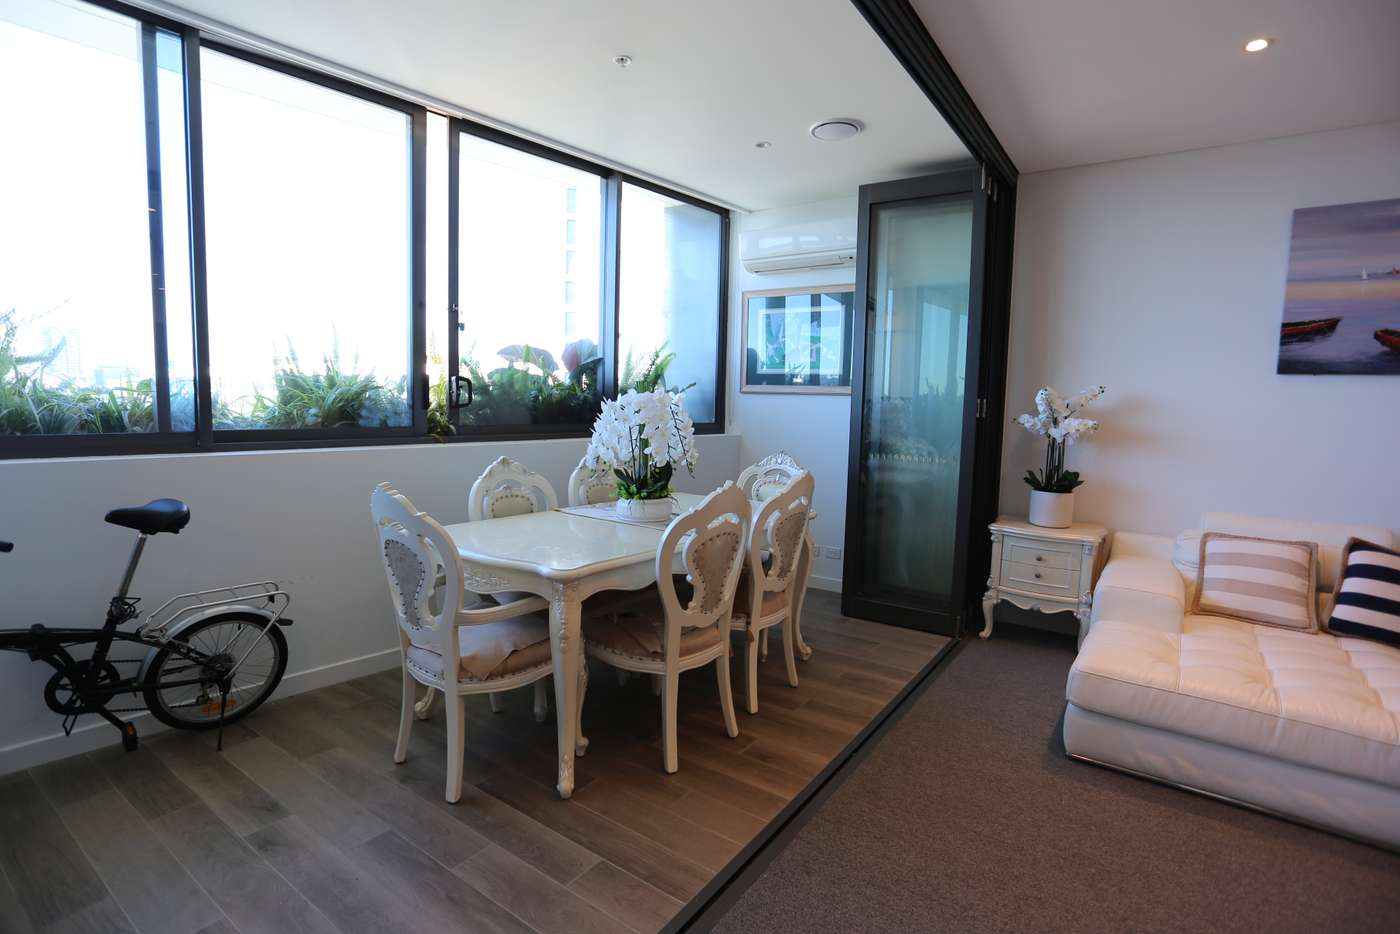 Seventh view of Homely apartment listing, E806/11 Wentworth Place, Wentworth Point NSW 2127